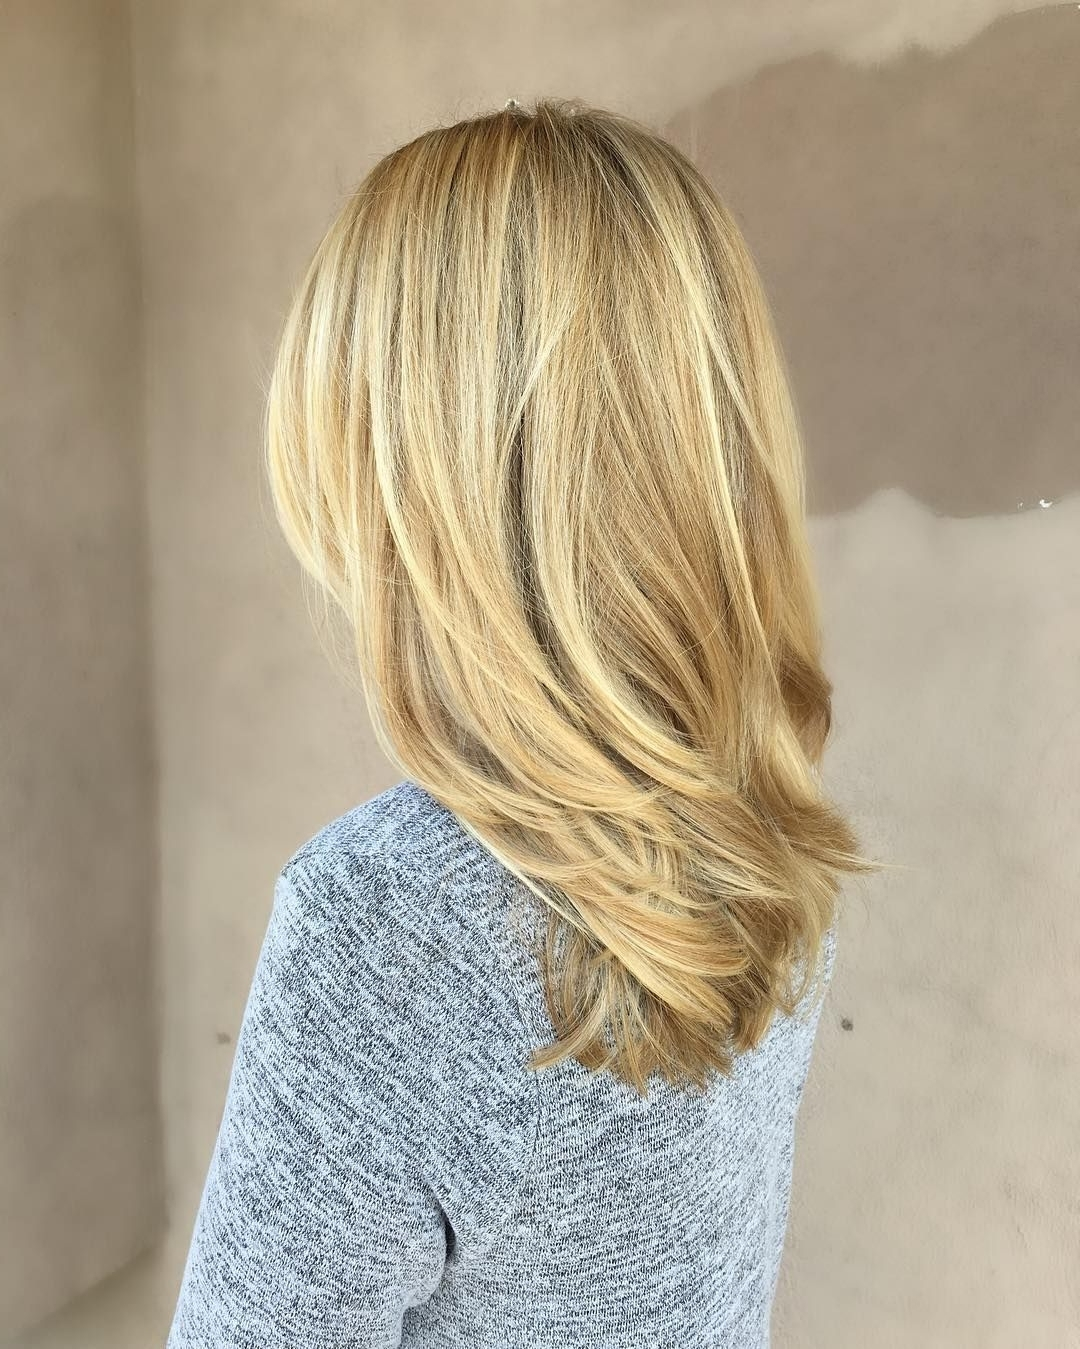 Medium Length Beige Blonde Straight Hair With Layers | Hair 10+ Awesome Medium Length Blonde Hairstyles Straight